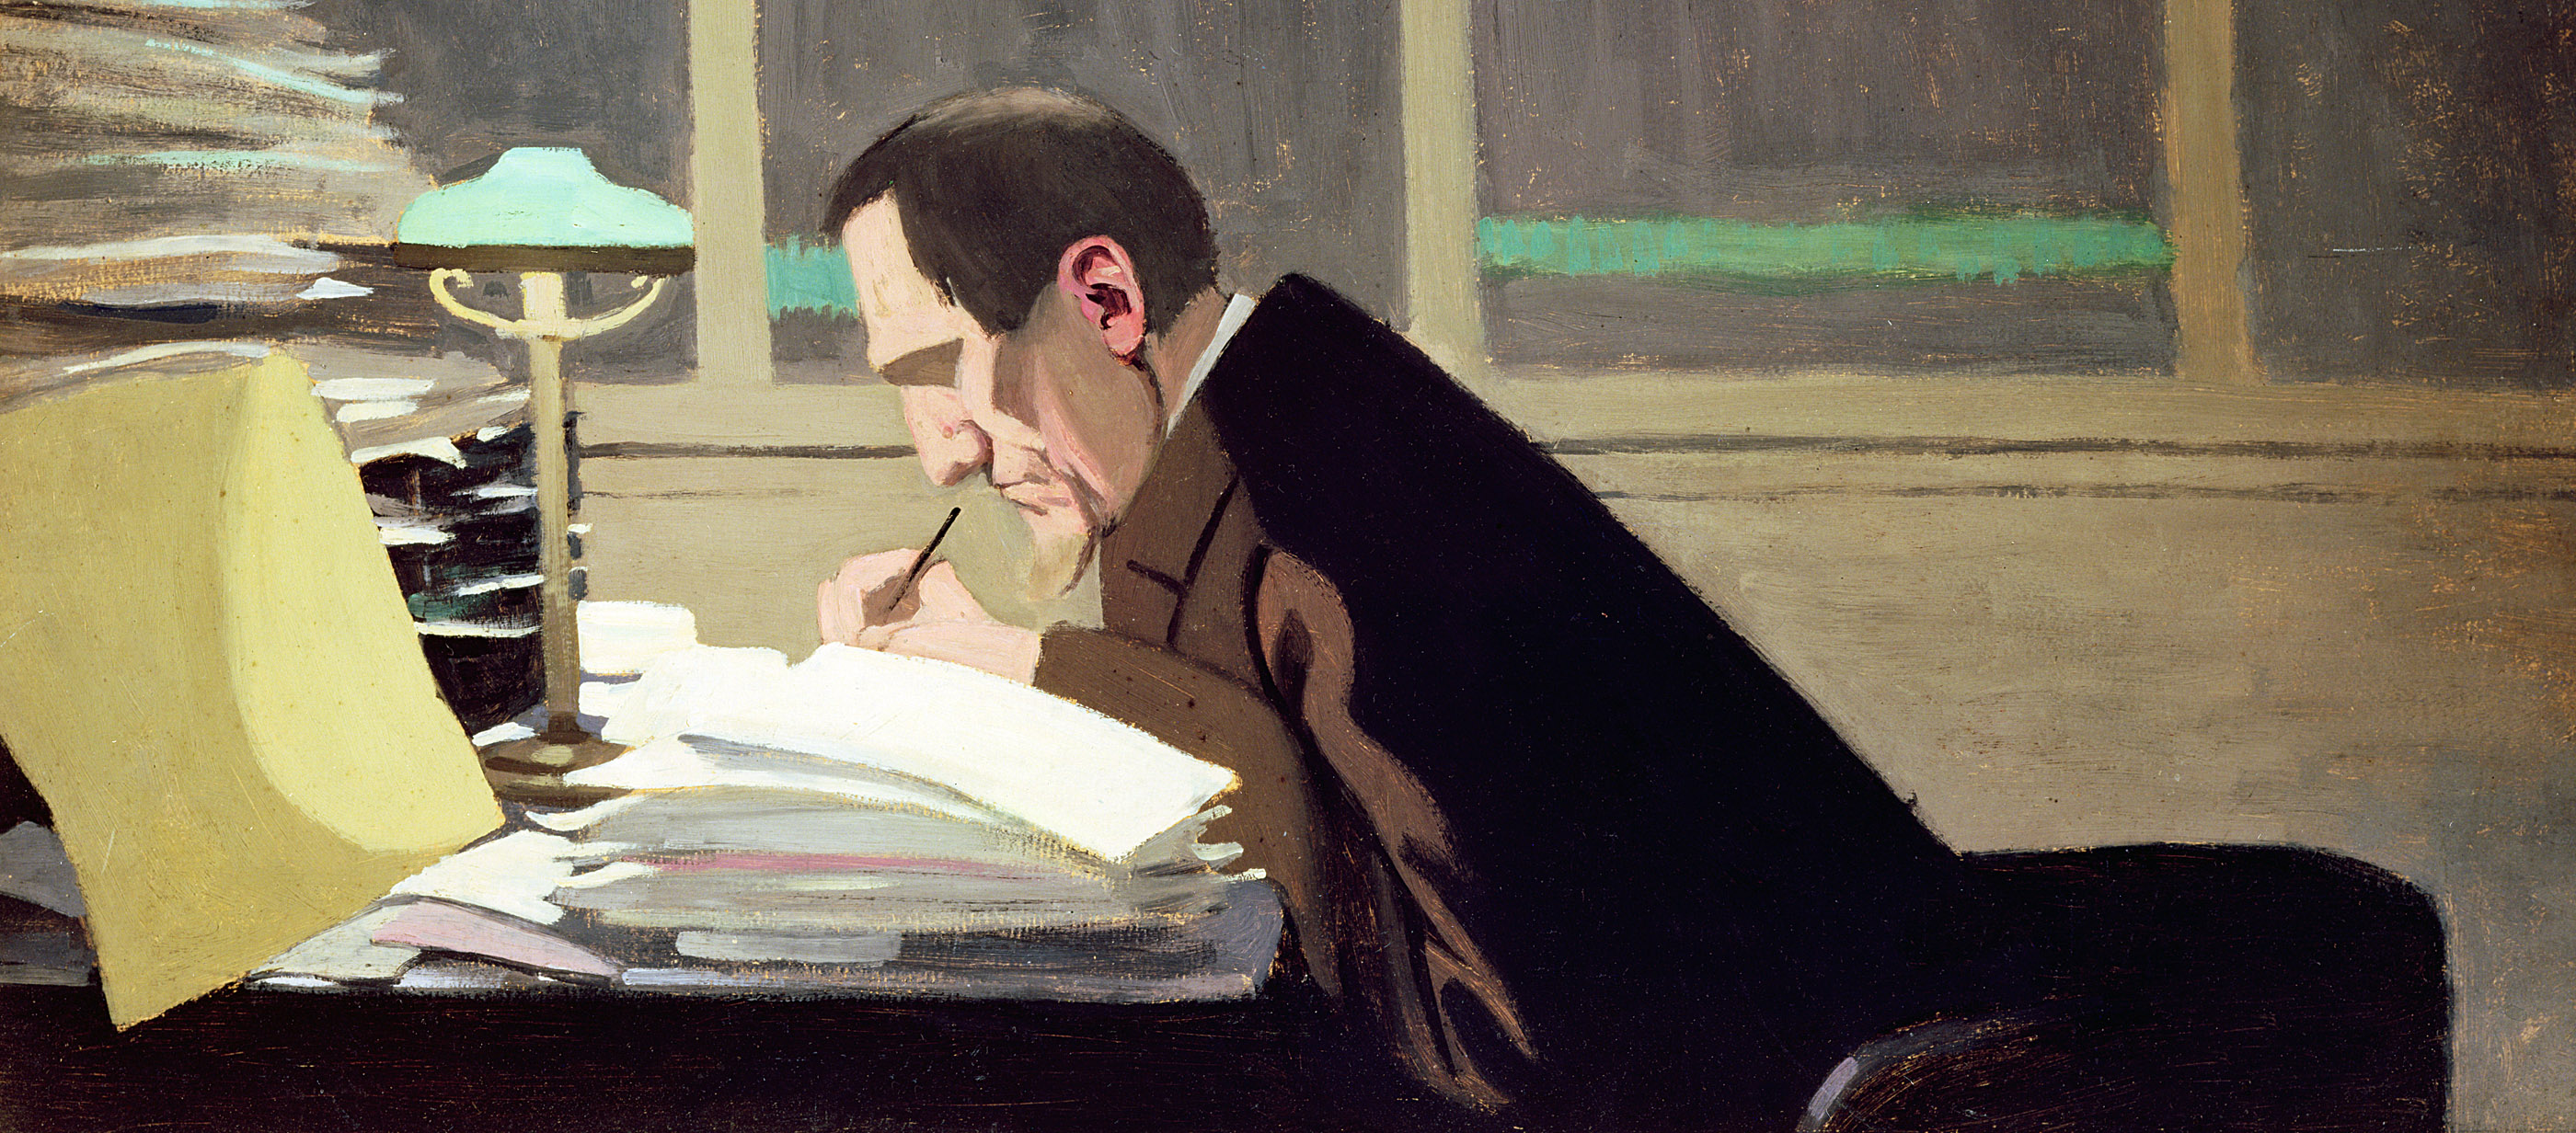 Félix Fénéon working at the French literary journal La Revue Blanche, by Félix Vallotton, 1896.